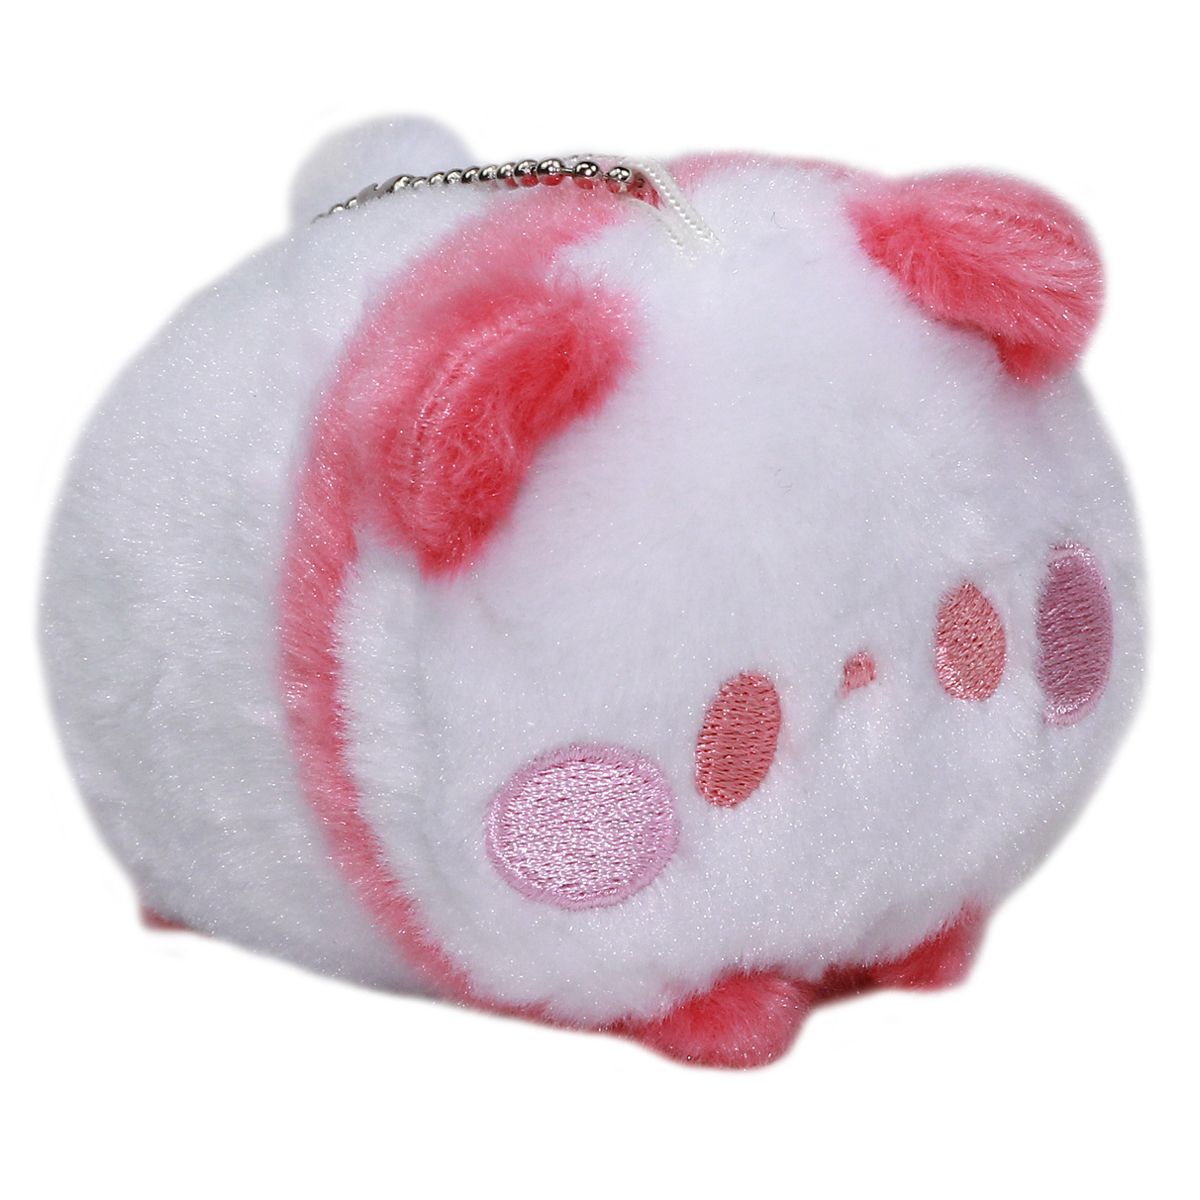 Super Soft Mochii Cute Panda Plush Keychain Dark Pink White 3.5